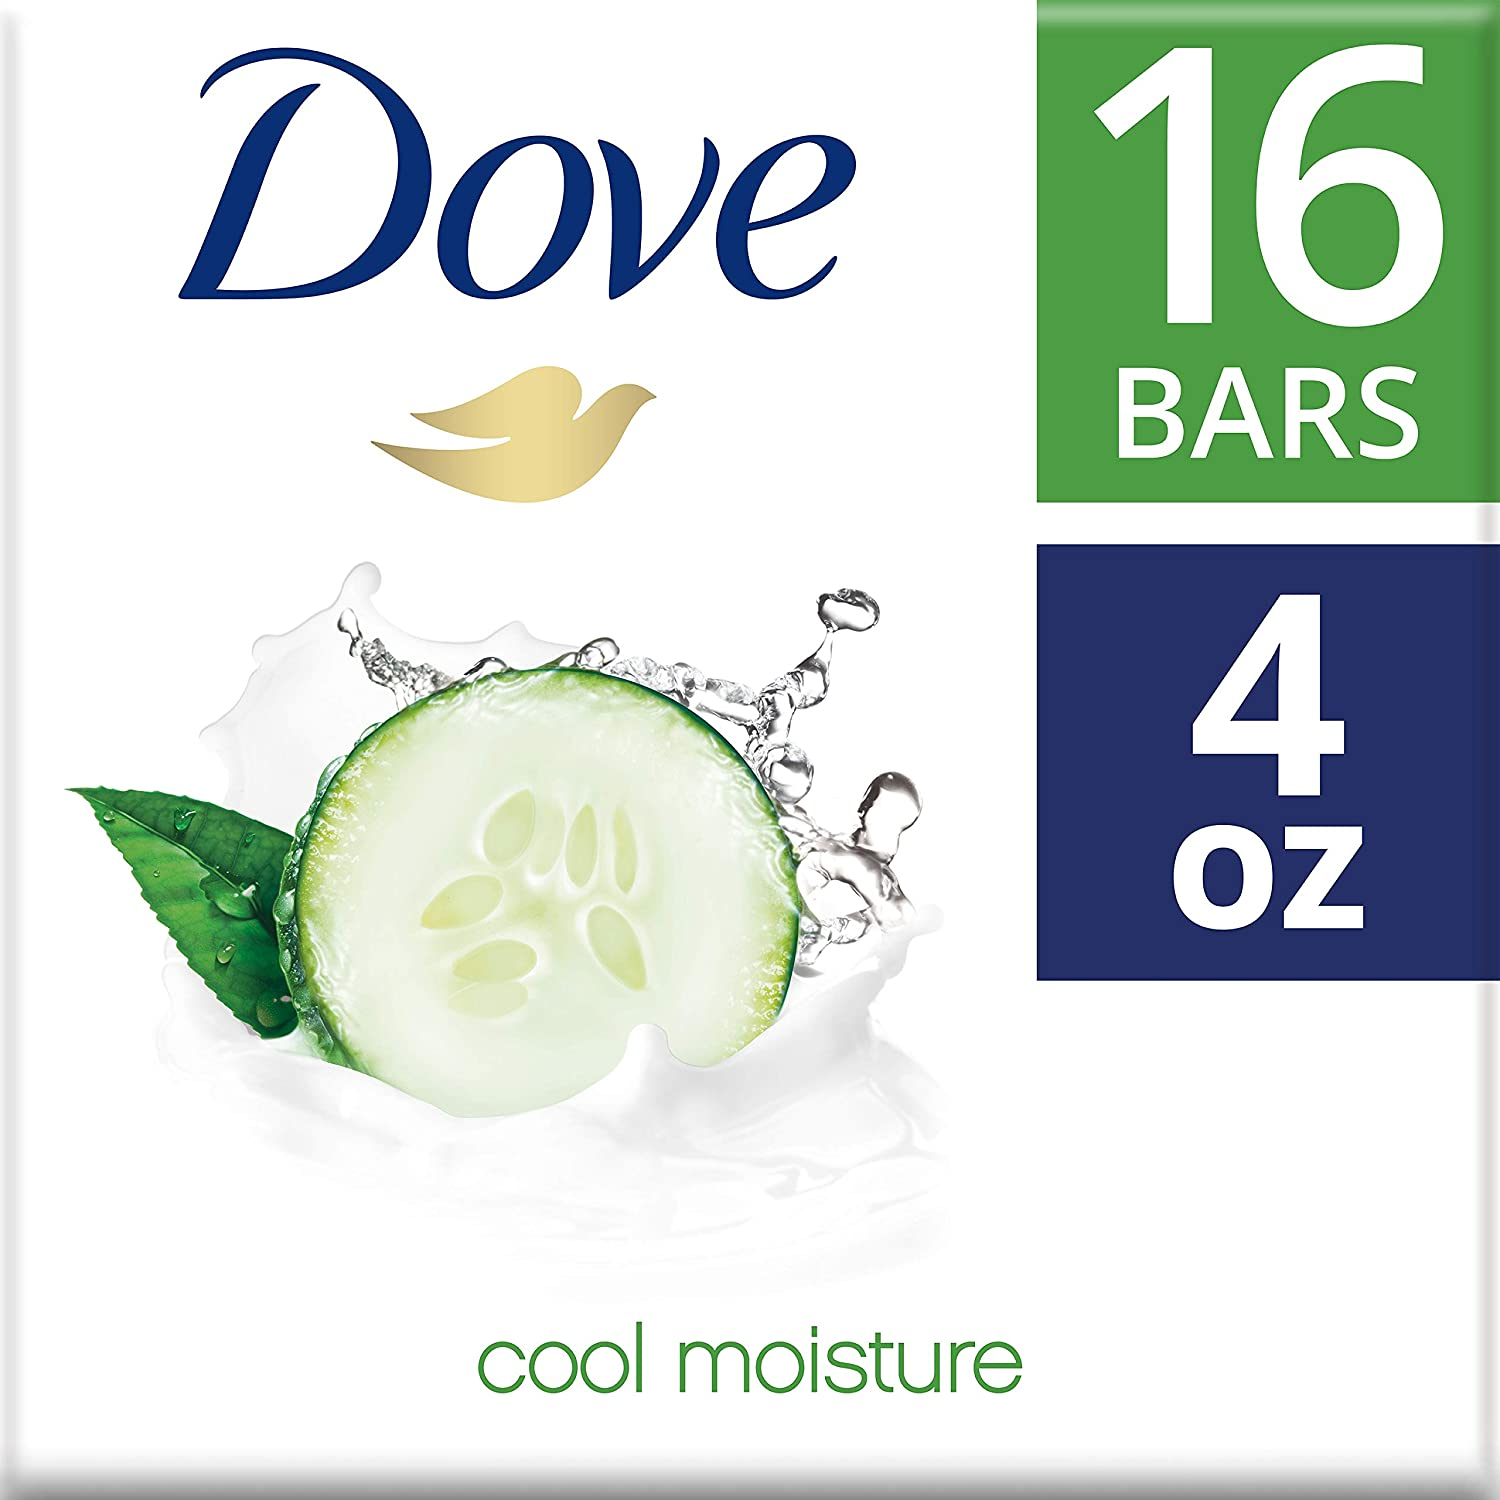 DoveMore Moisturizing than Bar Soap, Cucumber and Green Tea Beauty Bar, 4 Ounce, 16 Count (Pack of 1)